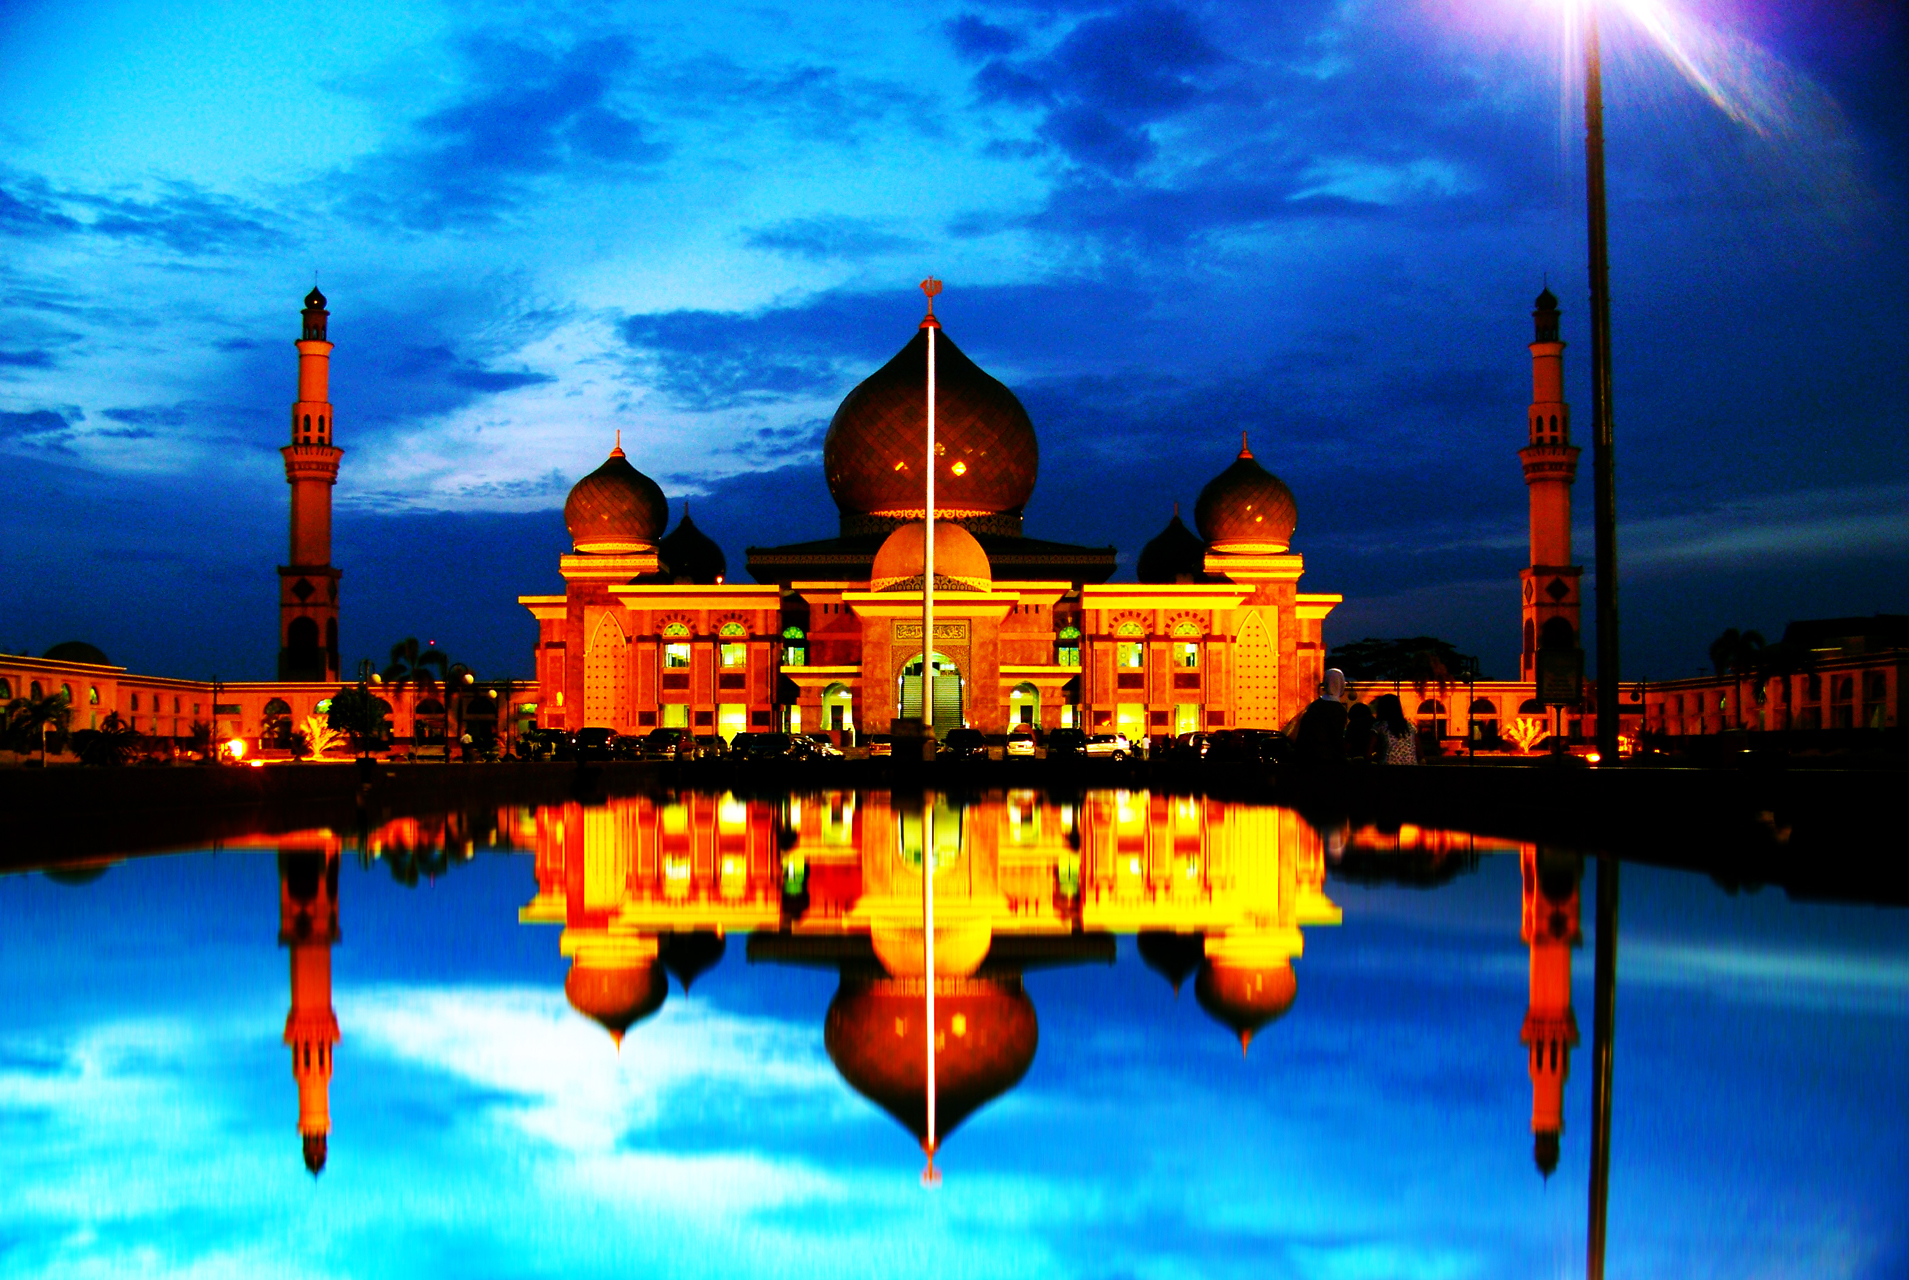 Rindu Masjid Agung Nur Riau Pekanbaru Nice Night Light Reflection